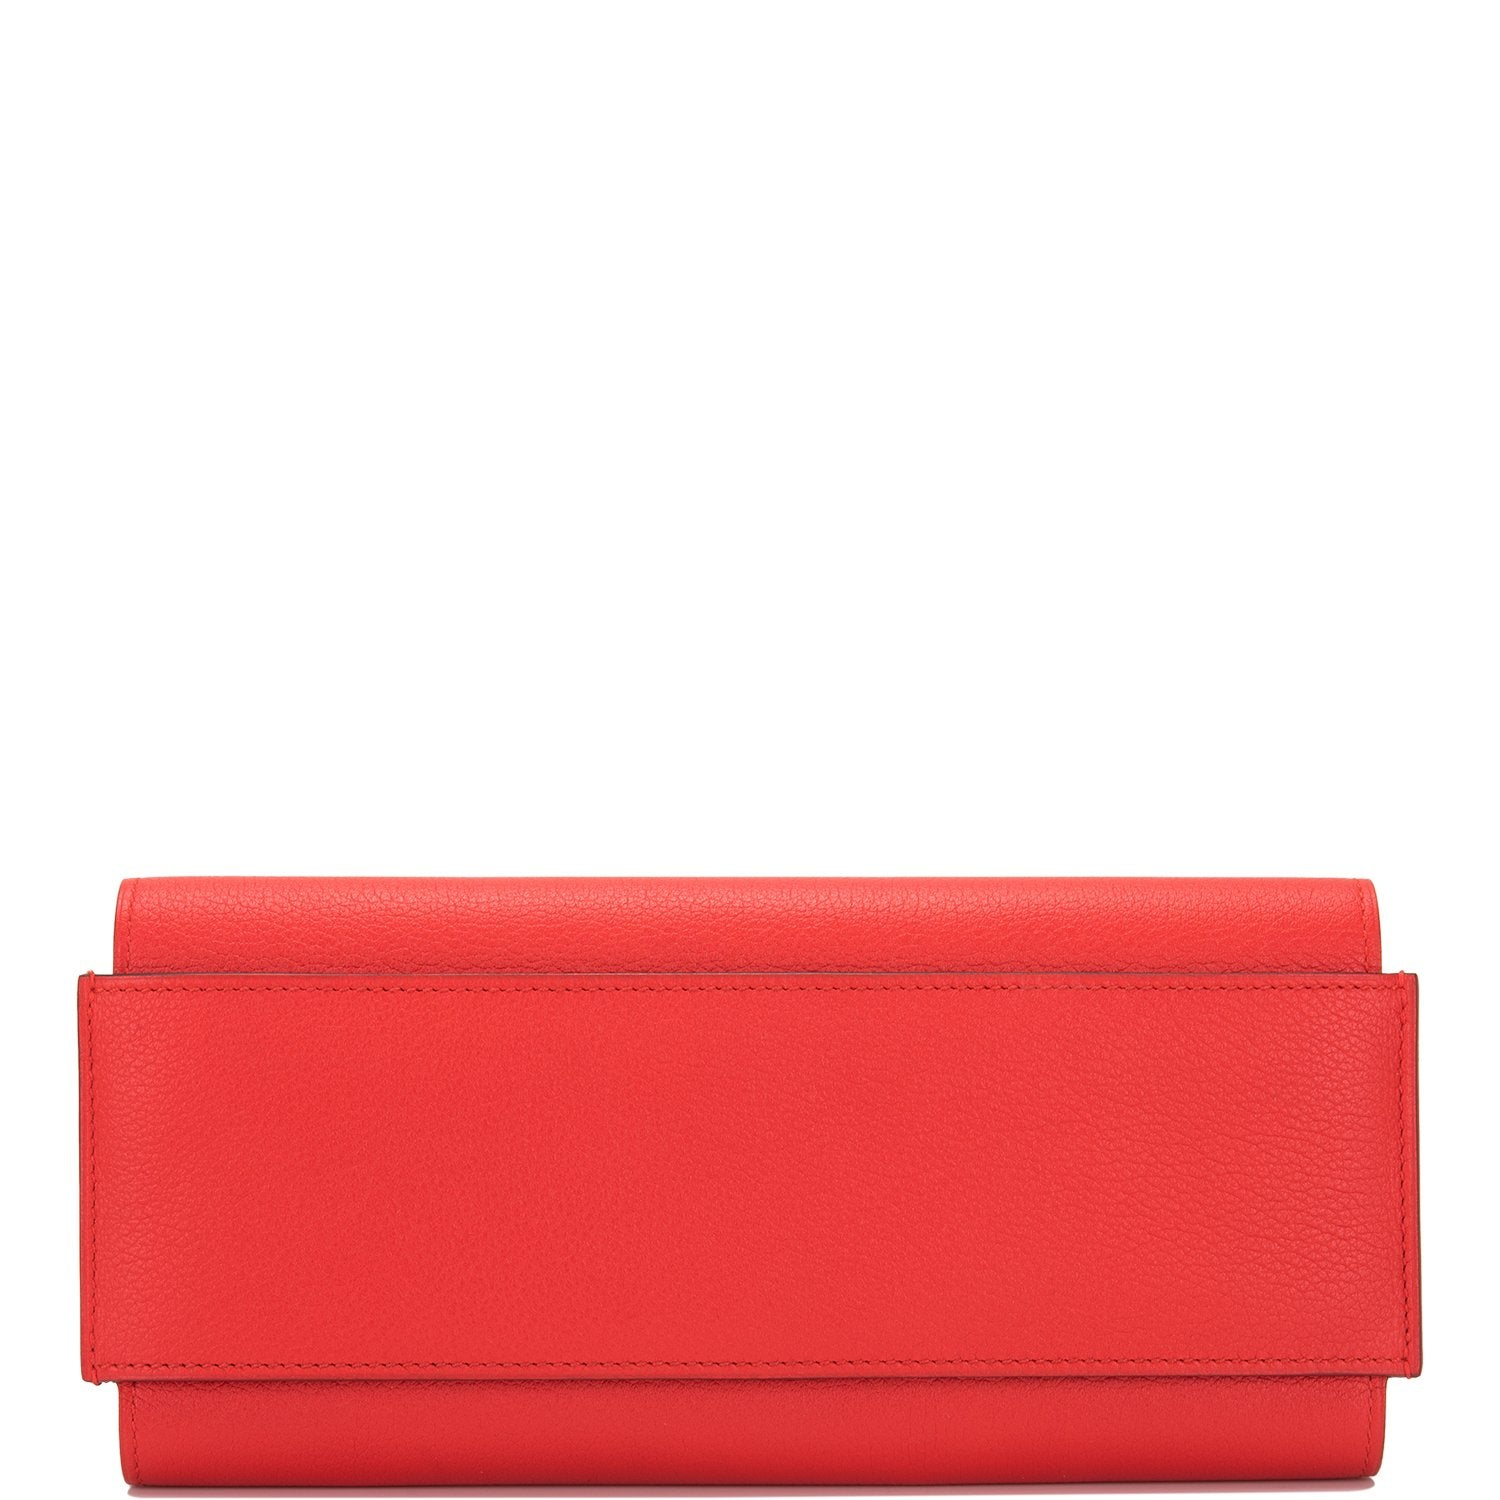 Hermes Rouge Grenat Evercolor Passant Long Wallet